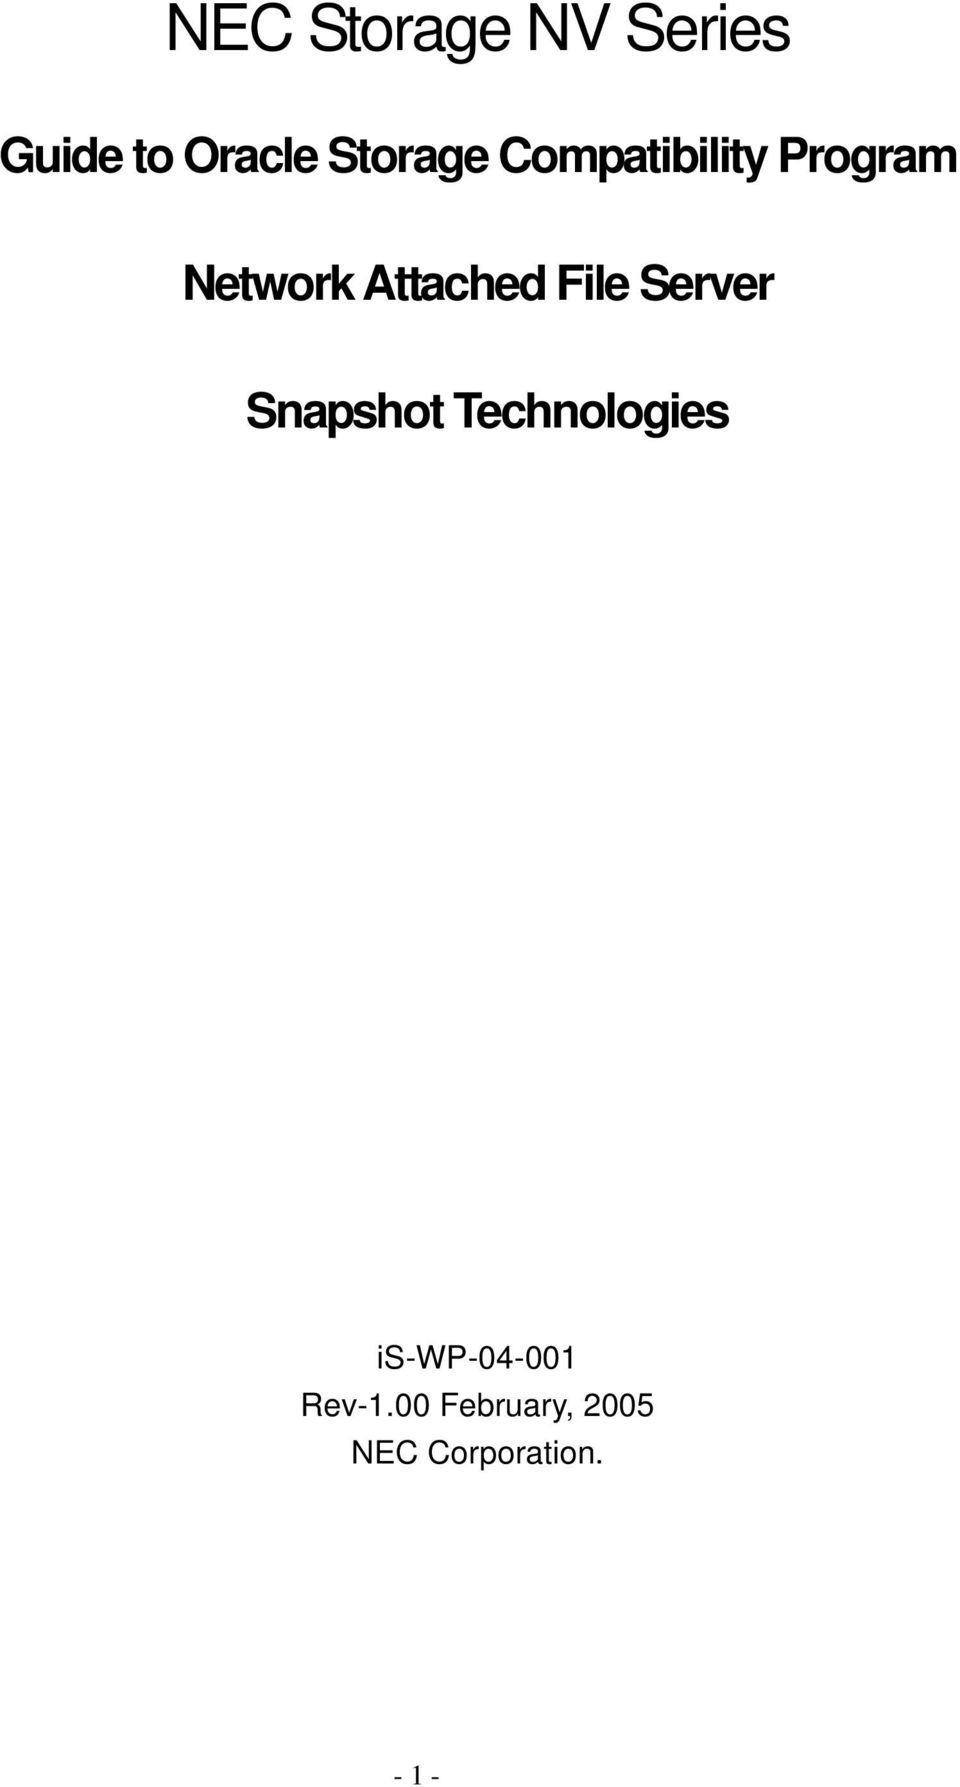 Attached File Server Snapshot Technologies